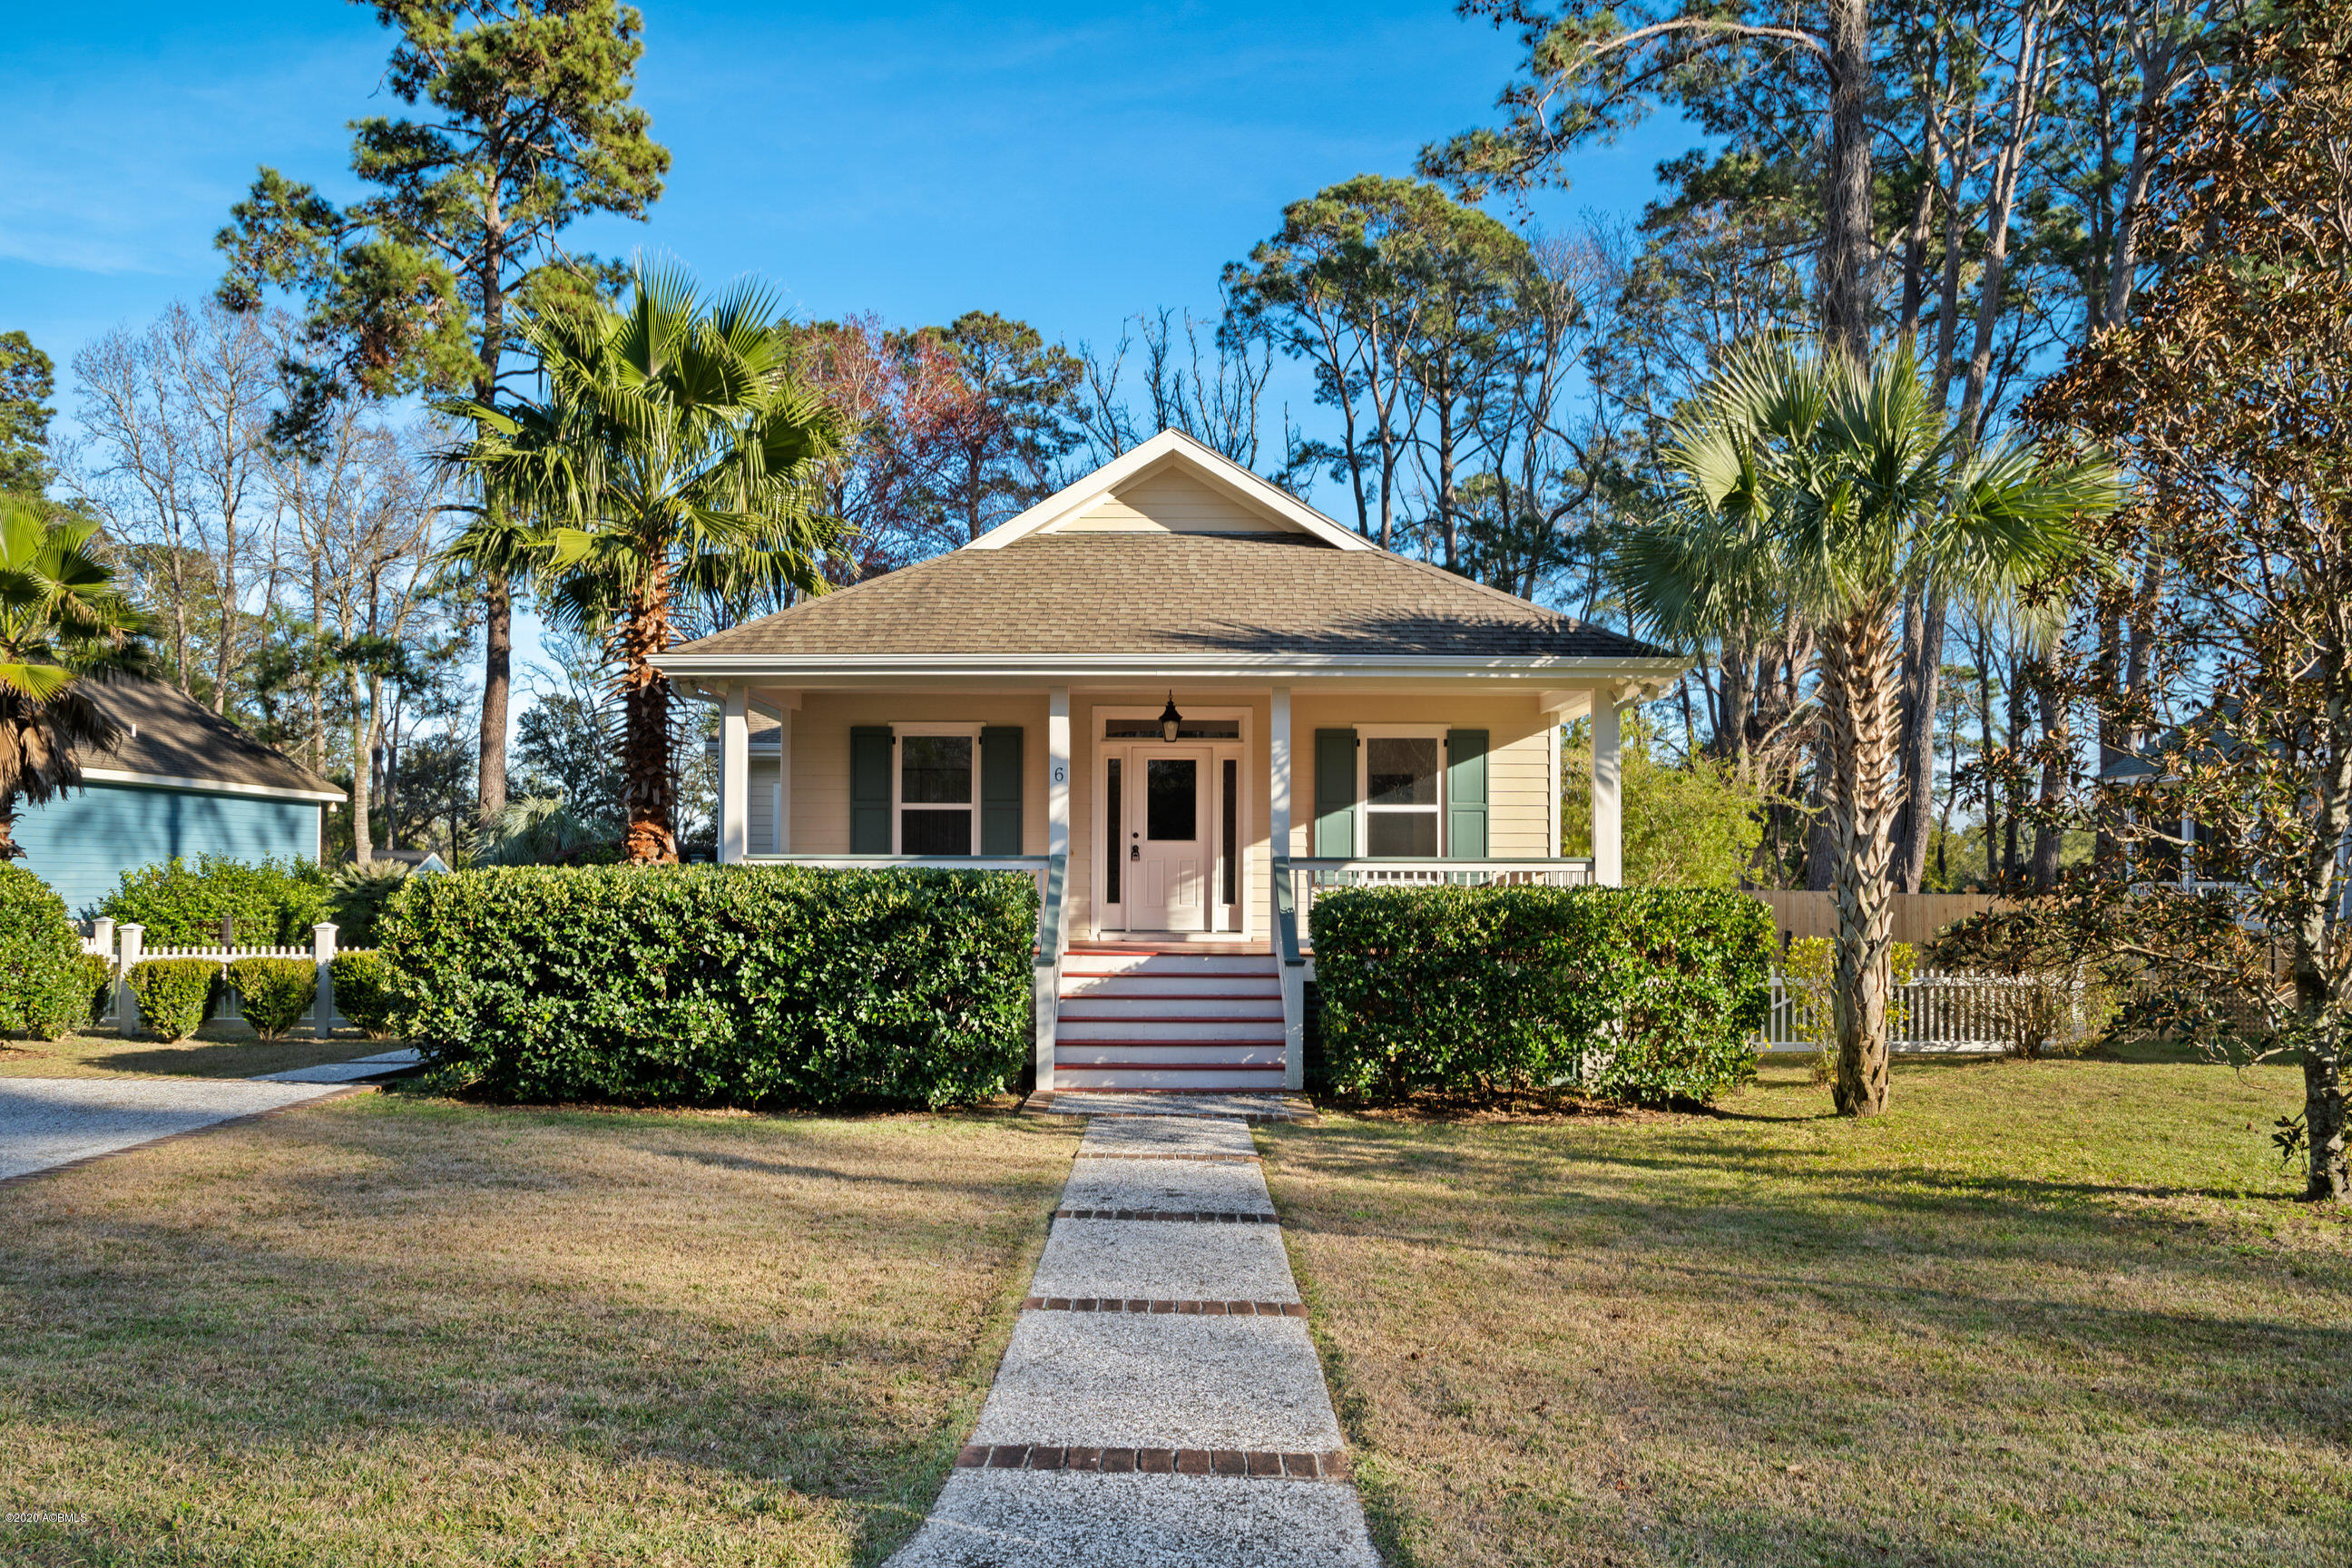 Photo of 6 River Drive, Beaufort, SC 29907